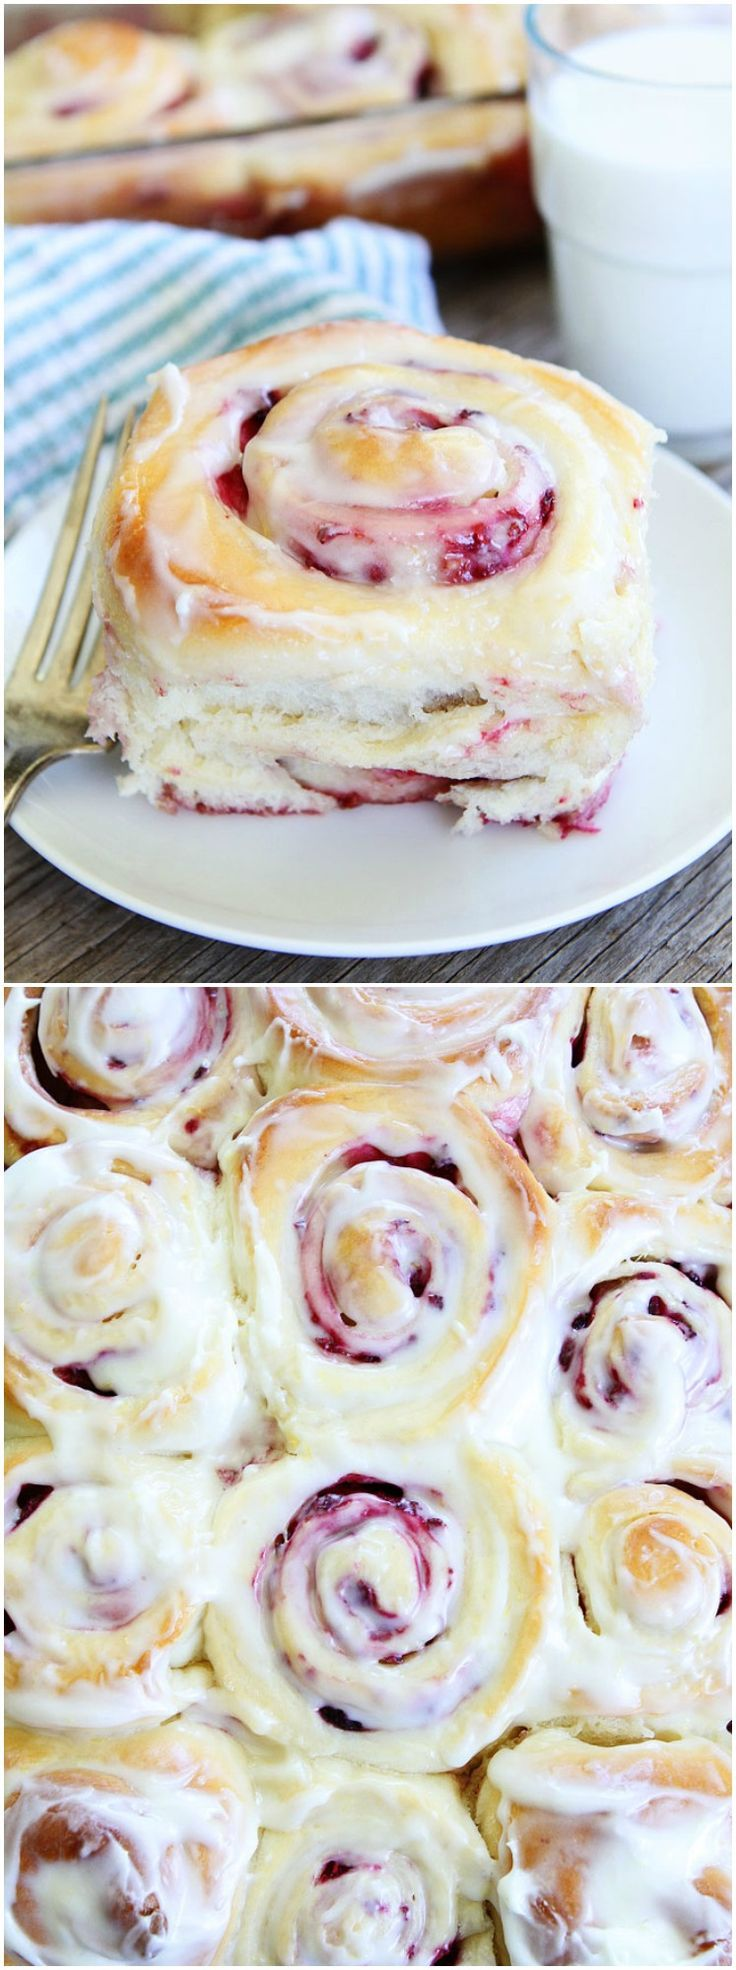 Raspberry Sweet Rolls Recipe on twopeasandtheirpod.com Love these soft and sweet yeast rolls! The raspberry filling and cream cheese frosting are amazing!